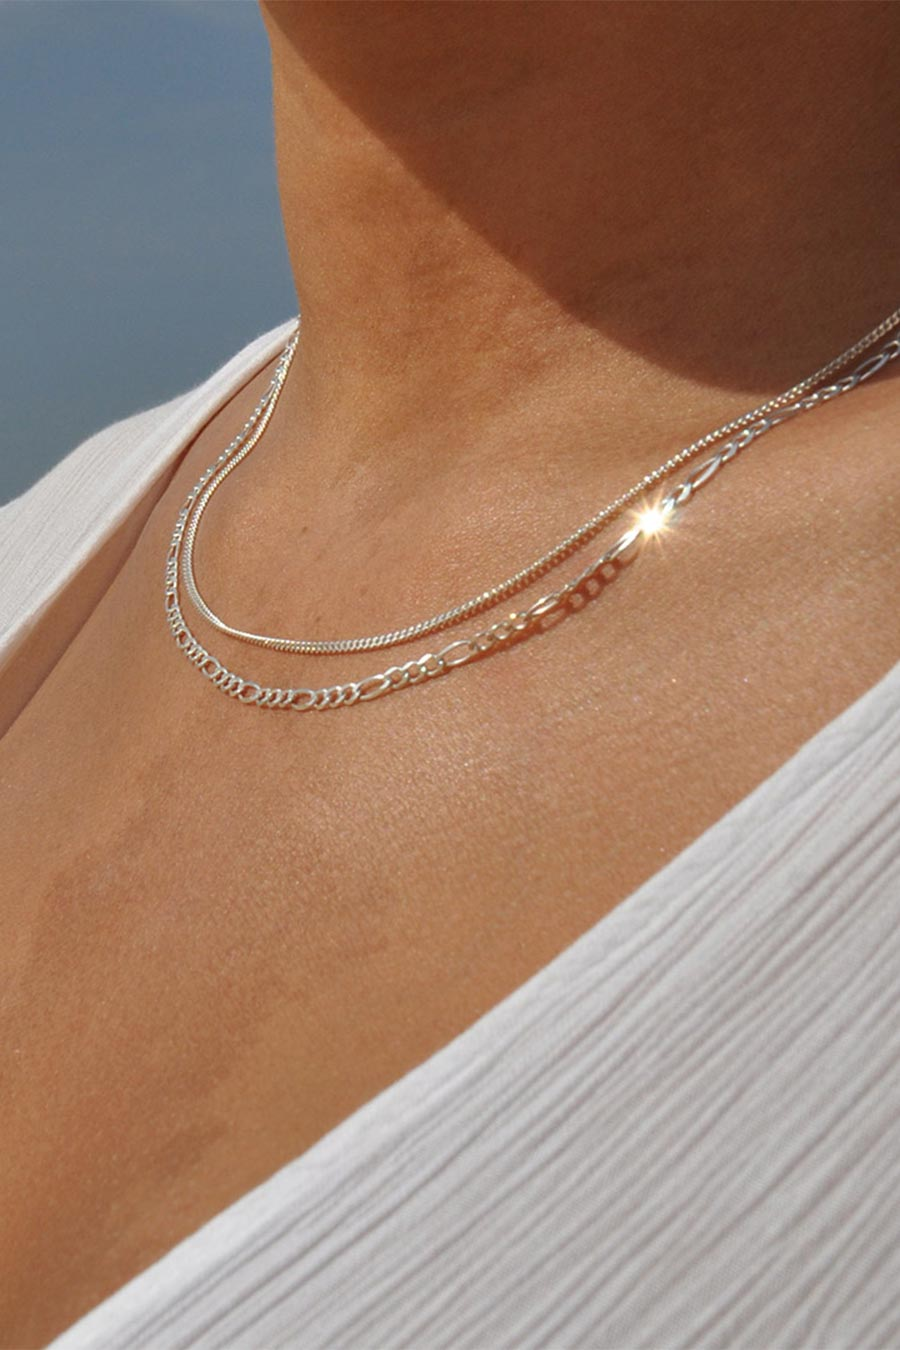 platfrm and gaia and terra jewellery